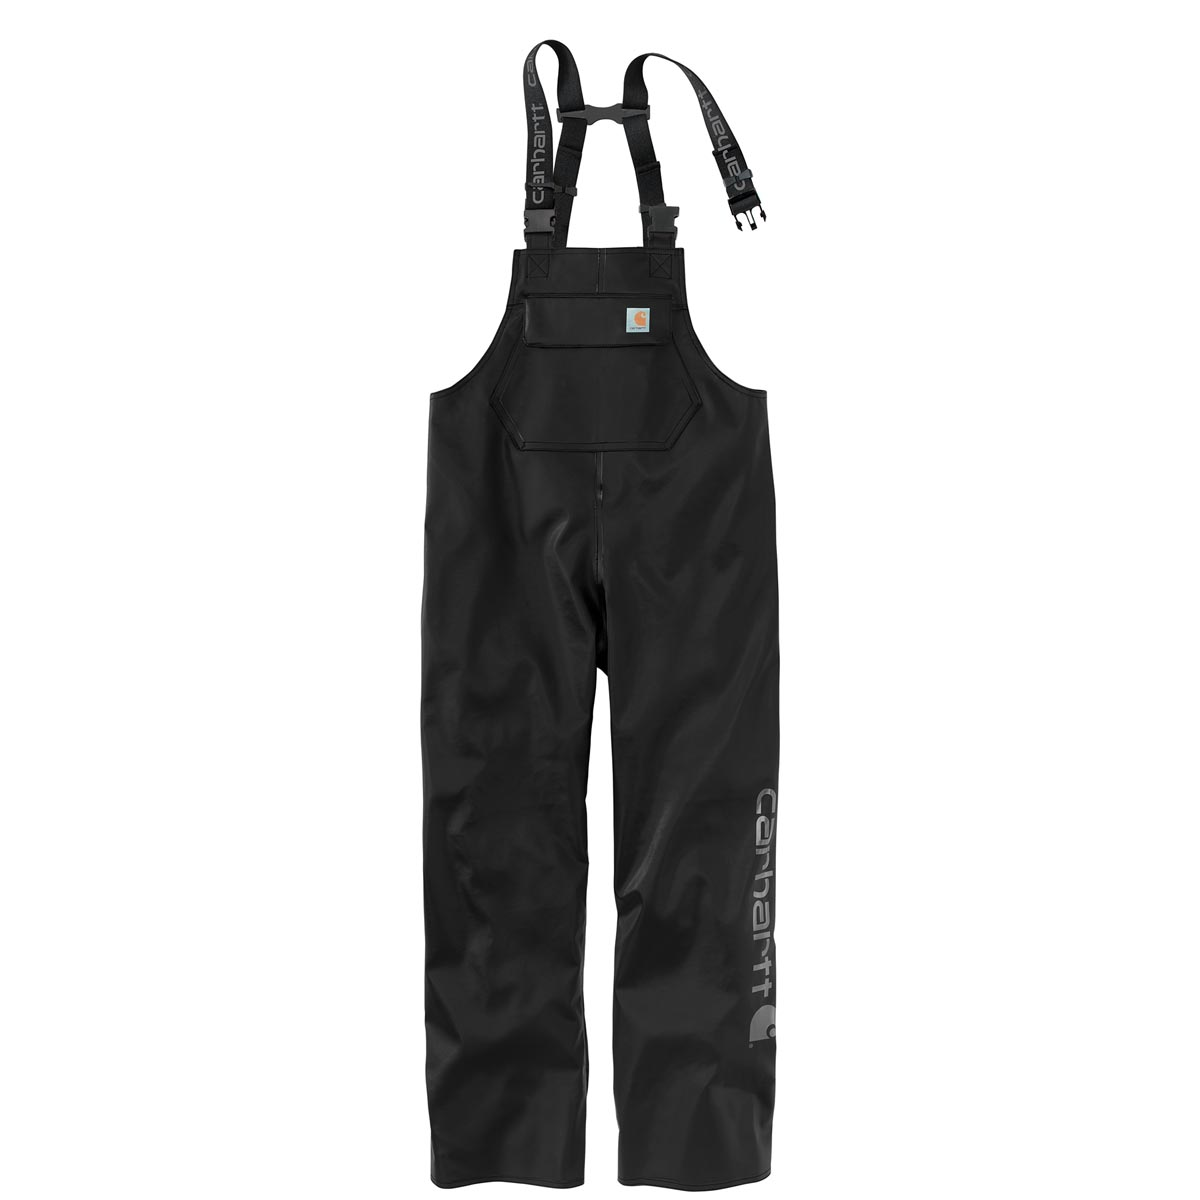 Carhartt Men's Mid-Weight Waterproof Rain Storm Bib Overalls